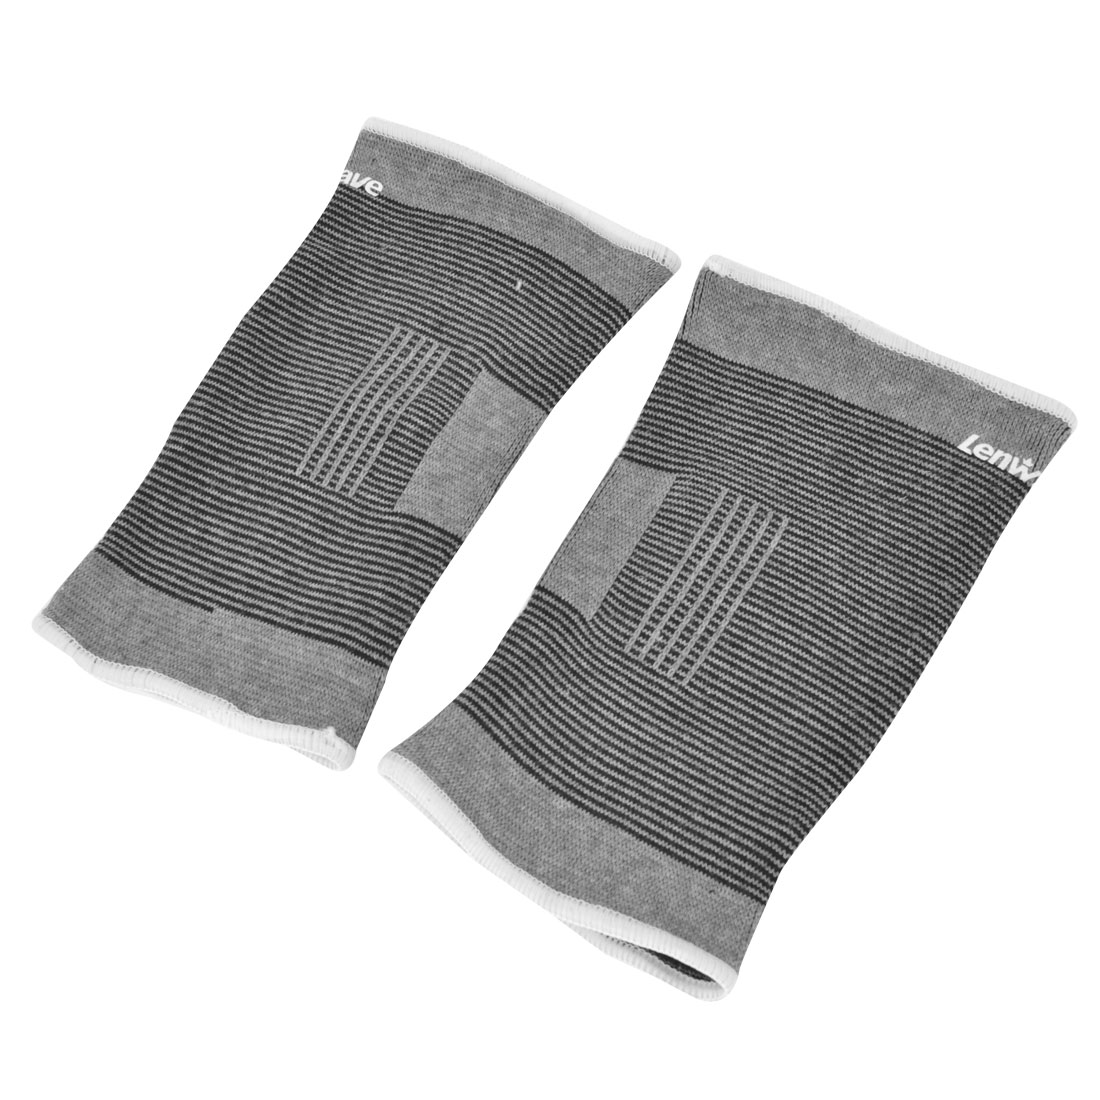 Sports Striped Fitness Elastic Elbow Protective Support Band Gray Black 2 Pcs